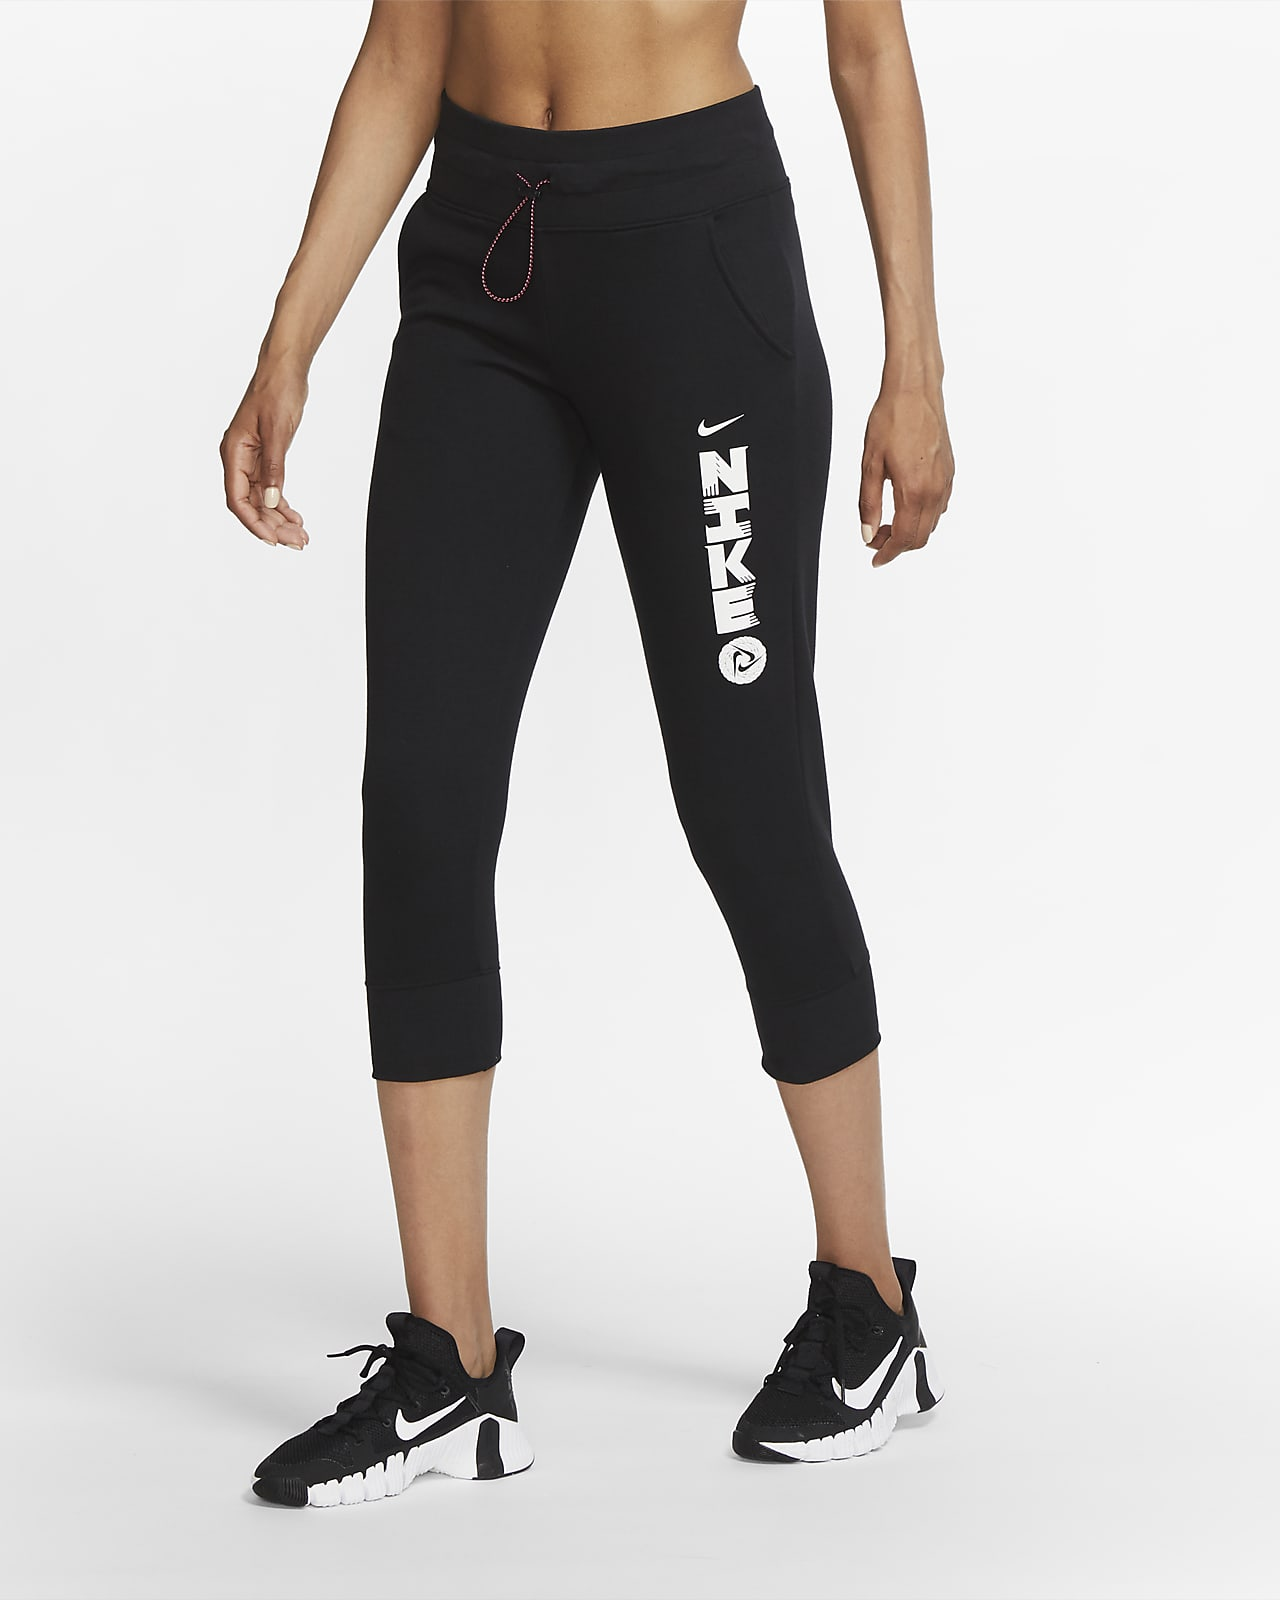 Nike Dri-FIT Icon Clash Women's 7/8 Training Trousers